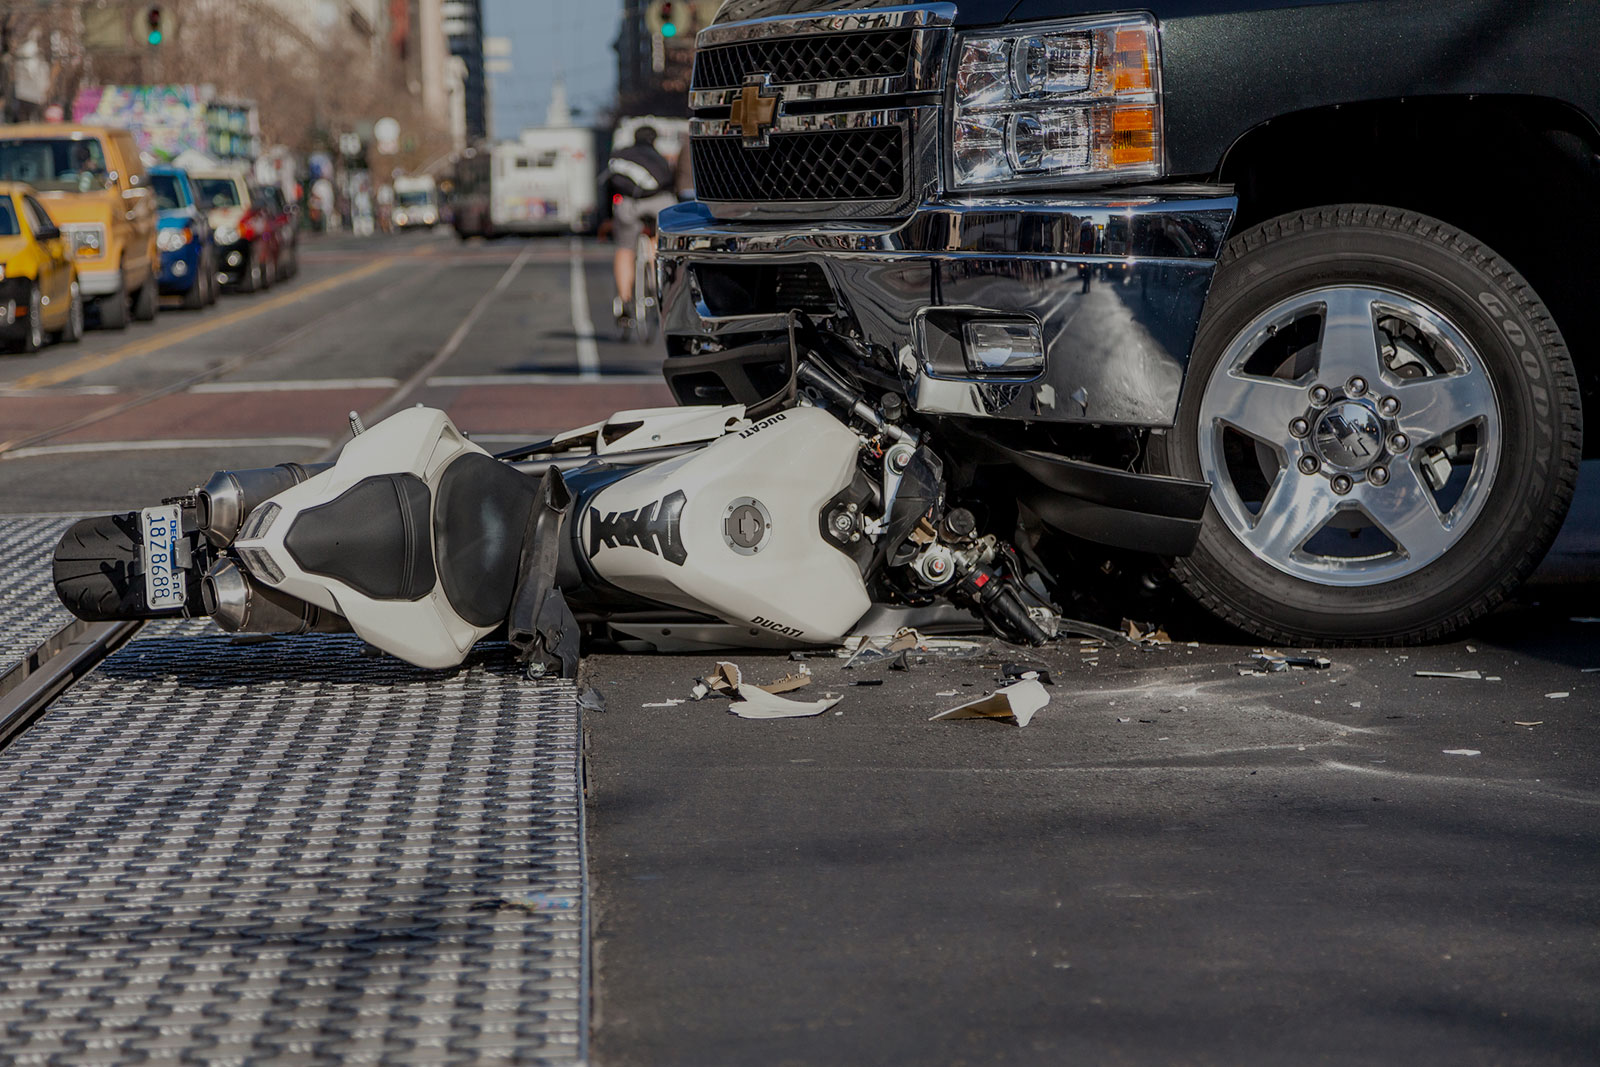 Personal Injury Header Background - Crashed Motorcycle Beneath Chevy Car